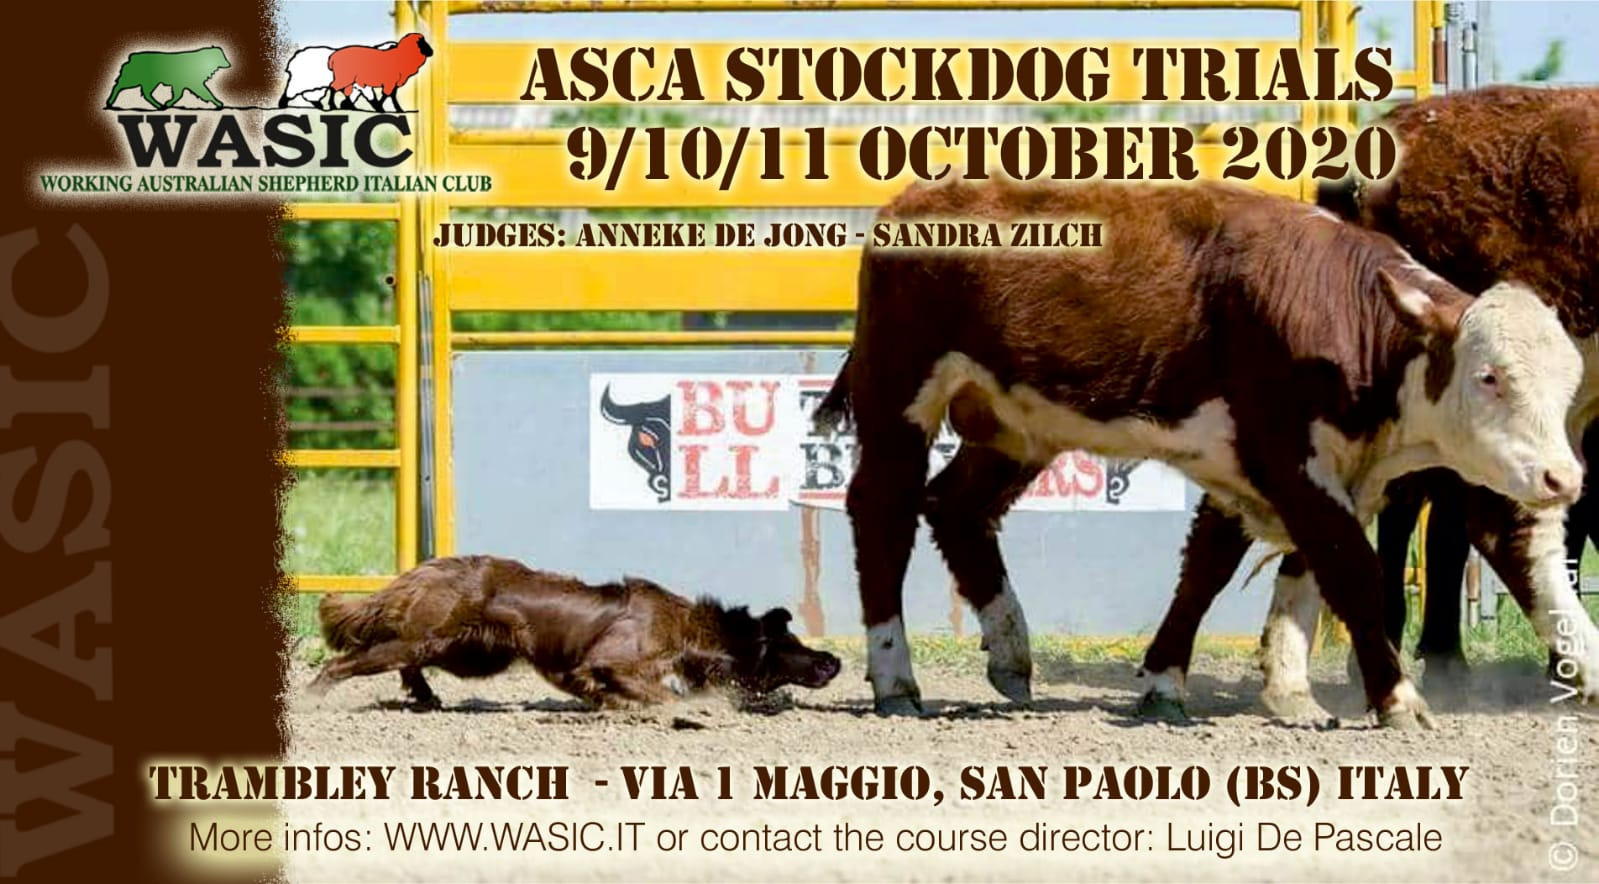 ... gli Stockdog Trials